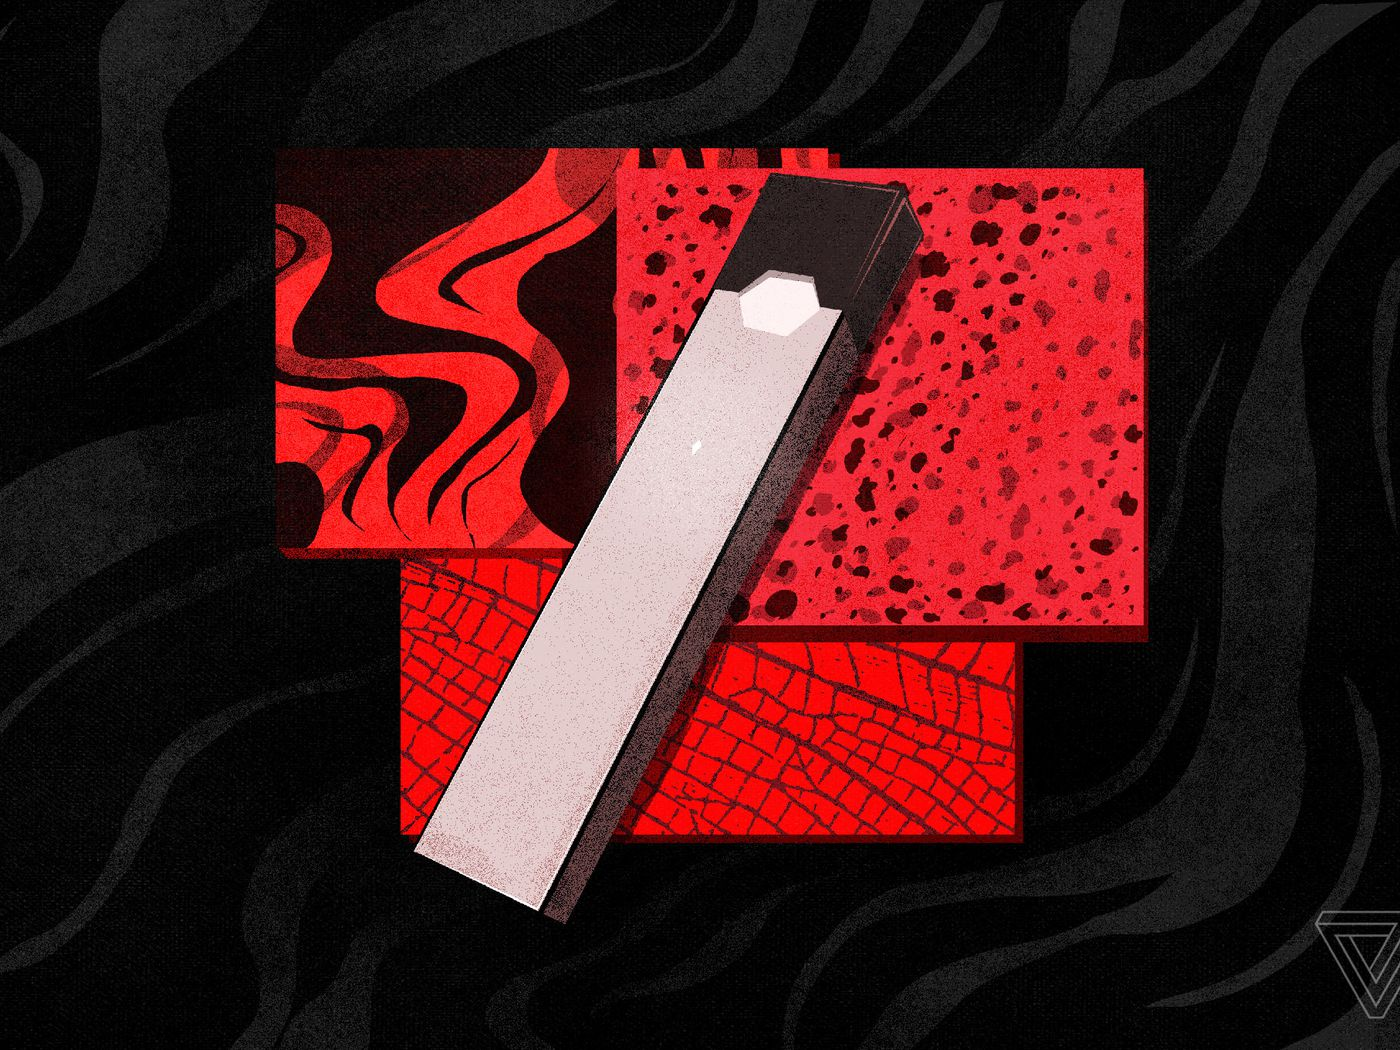 Juul cuts flavored nicotine supply to stores and shutters